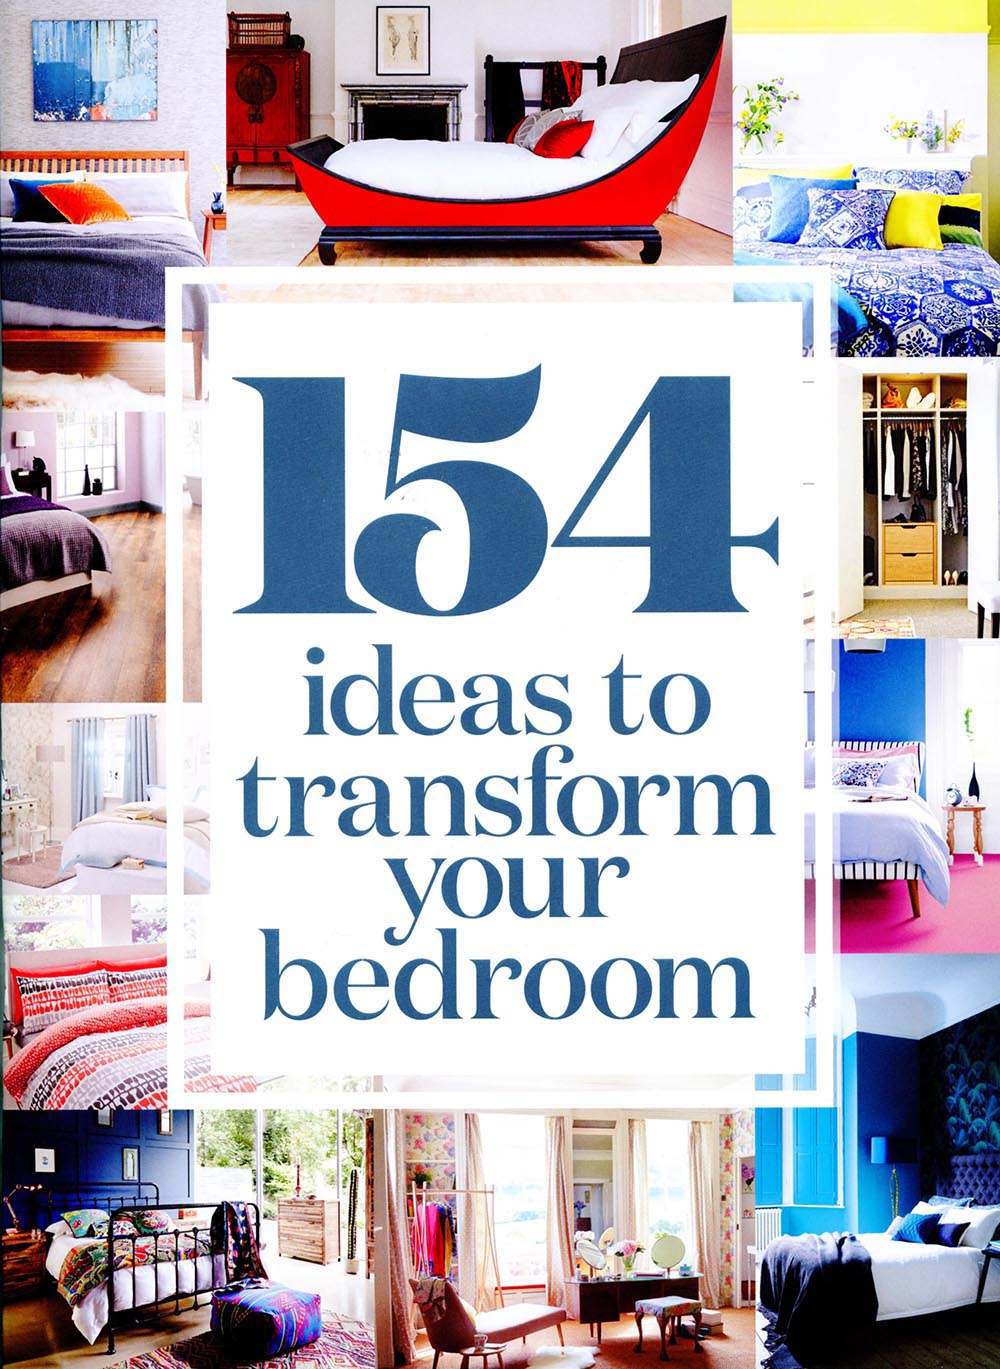 Real Homes May 2016 154 Ideas To Transform Your Bedroom